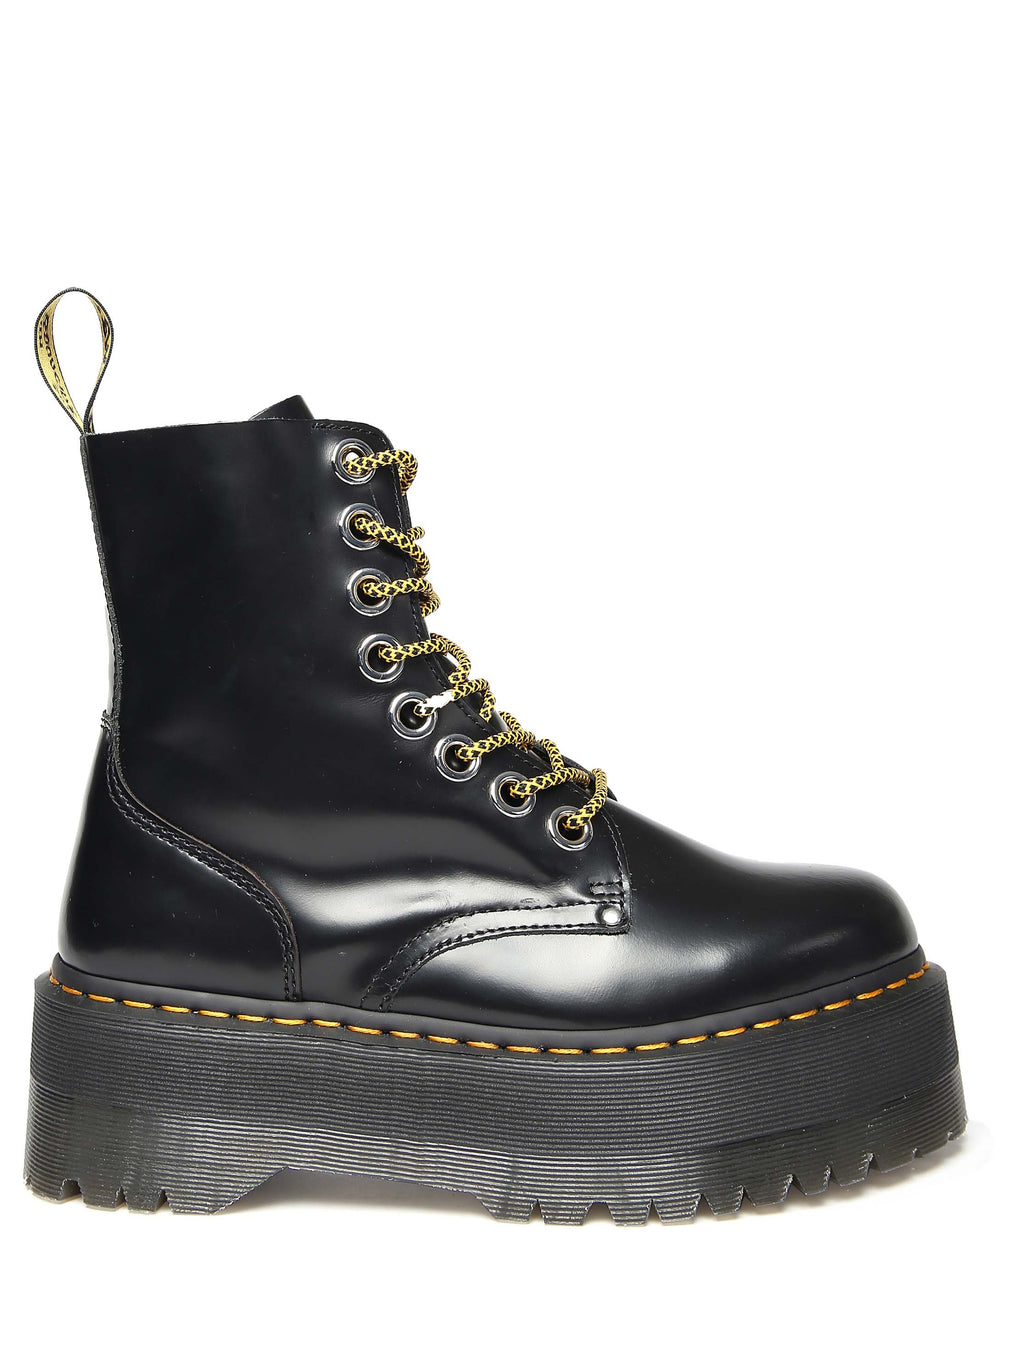 DR. MARTENS Jadon Max leather boots